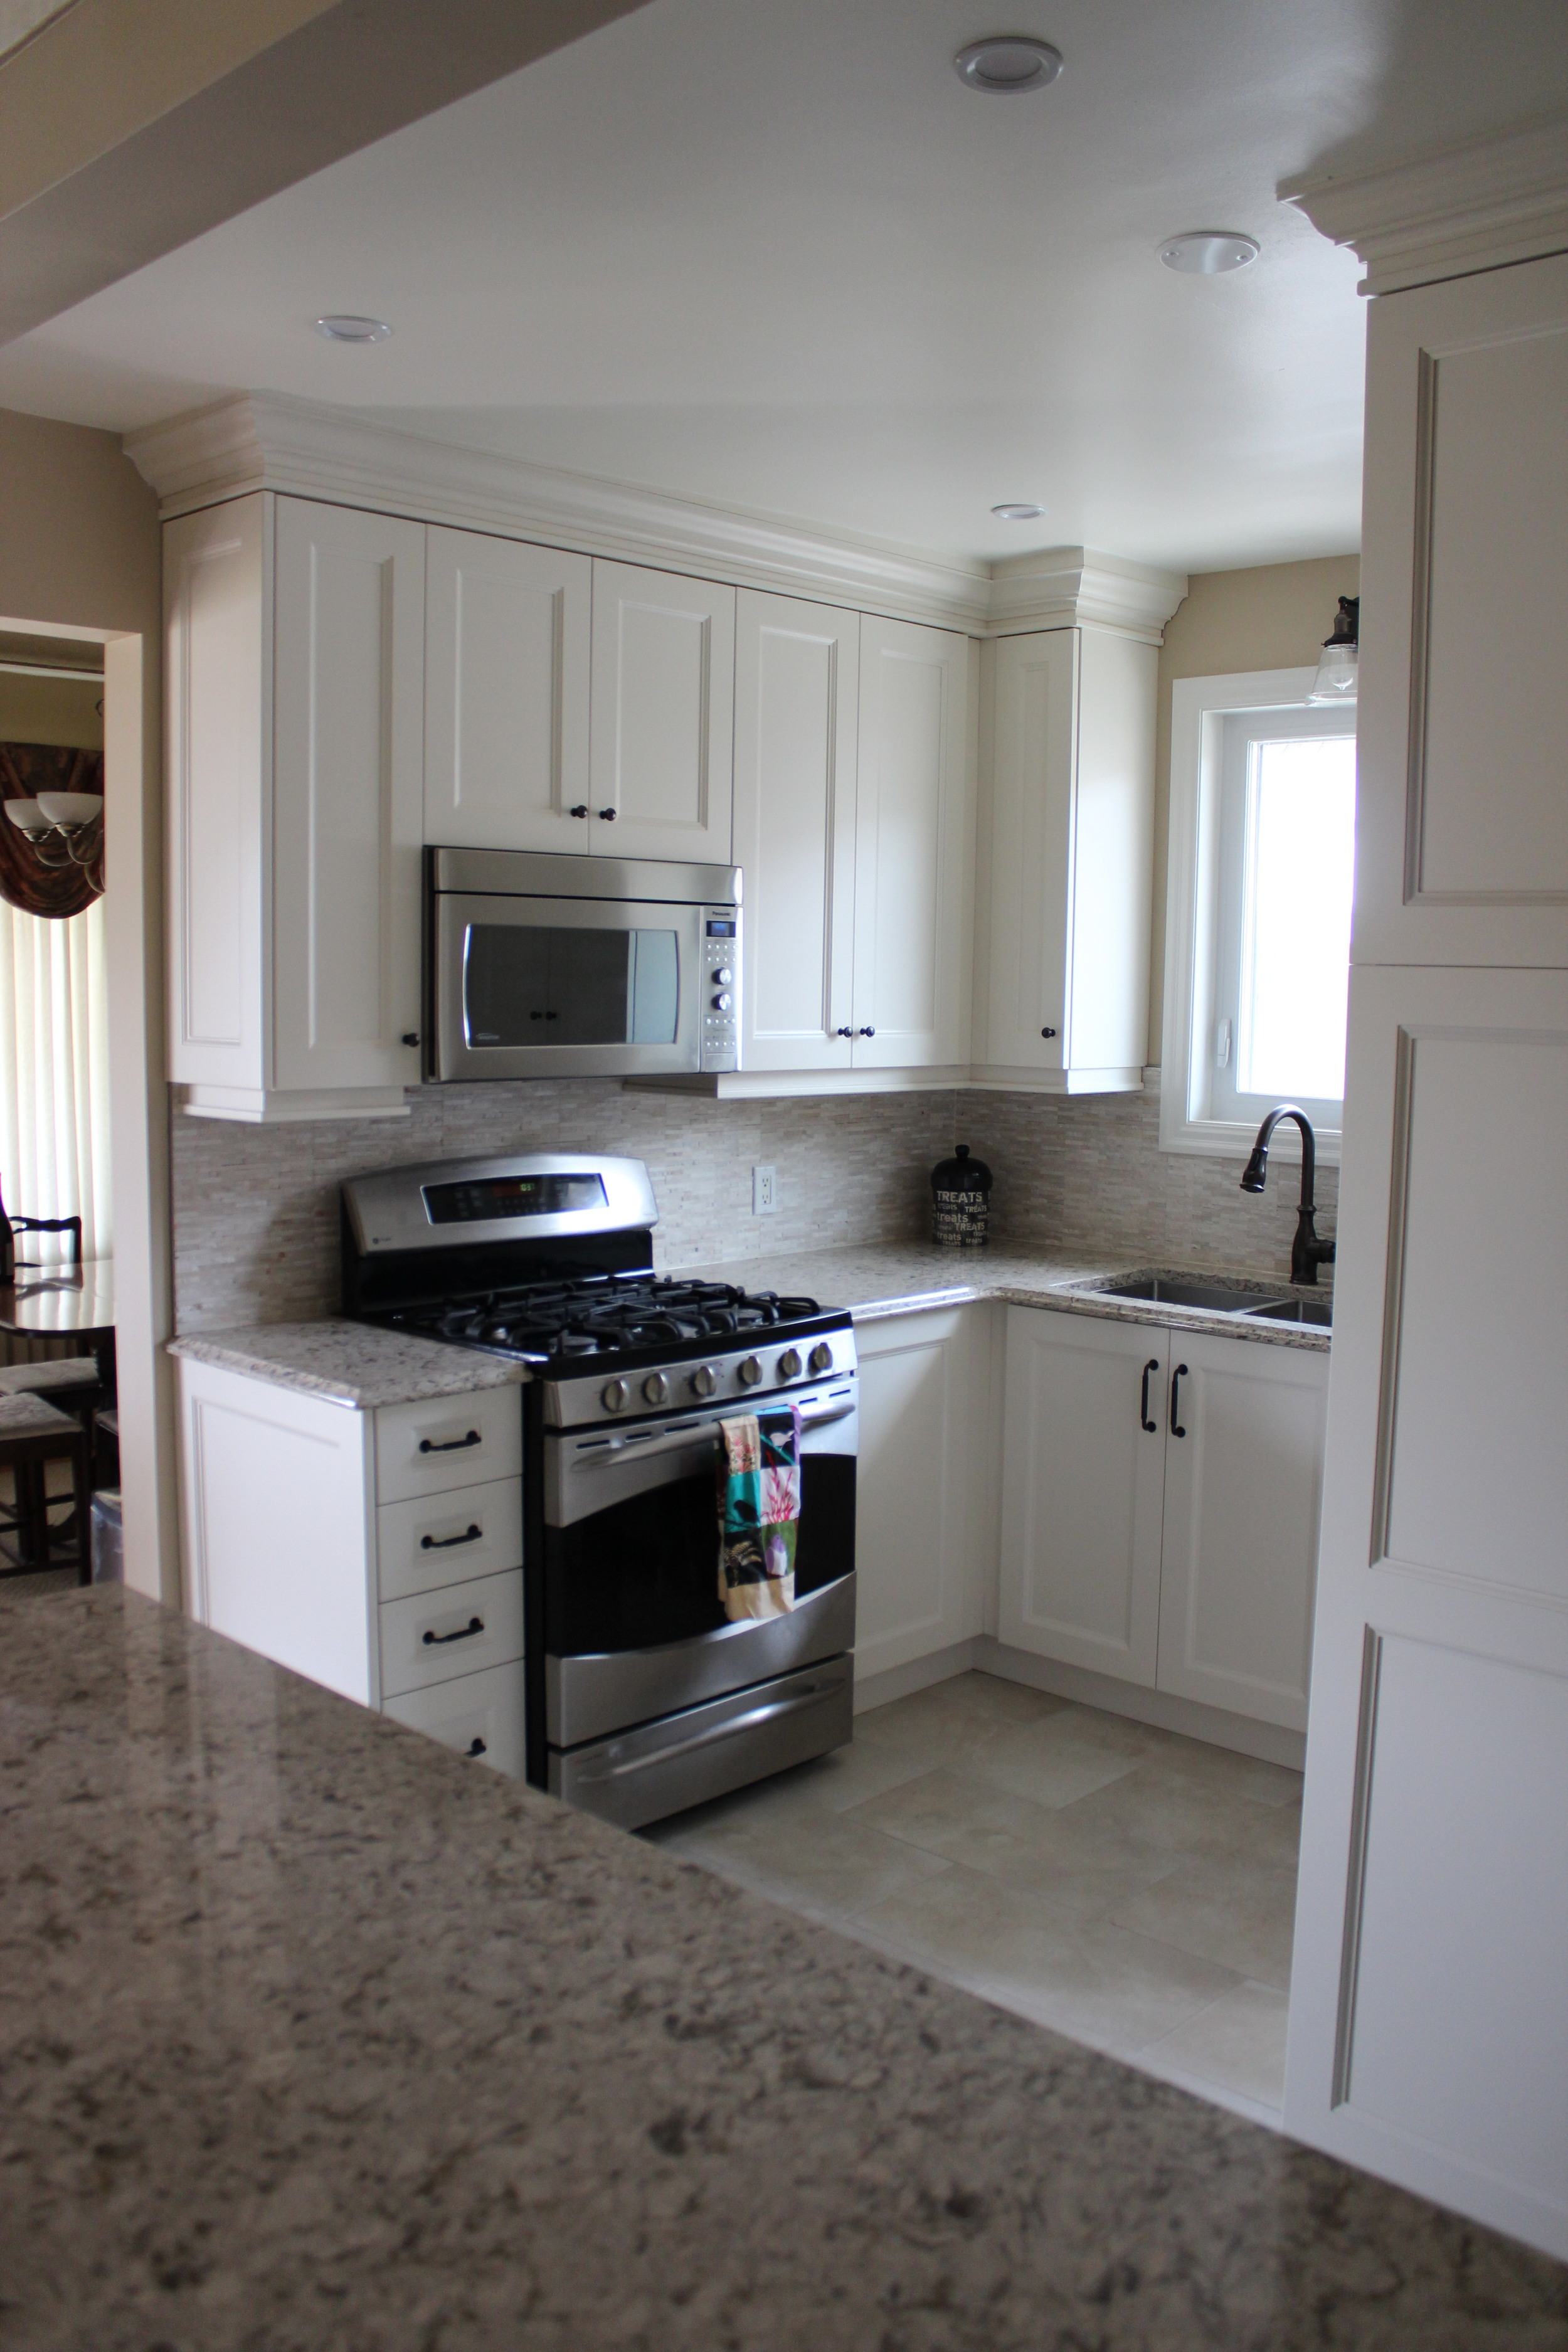 Bult-in appliances wasted no space in this compact floor plan.